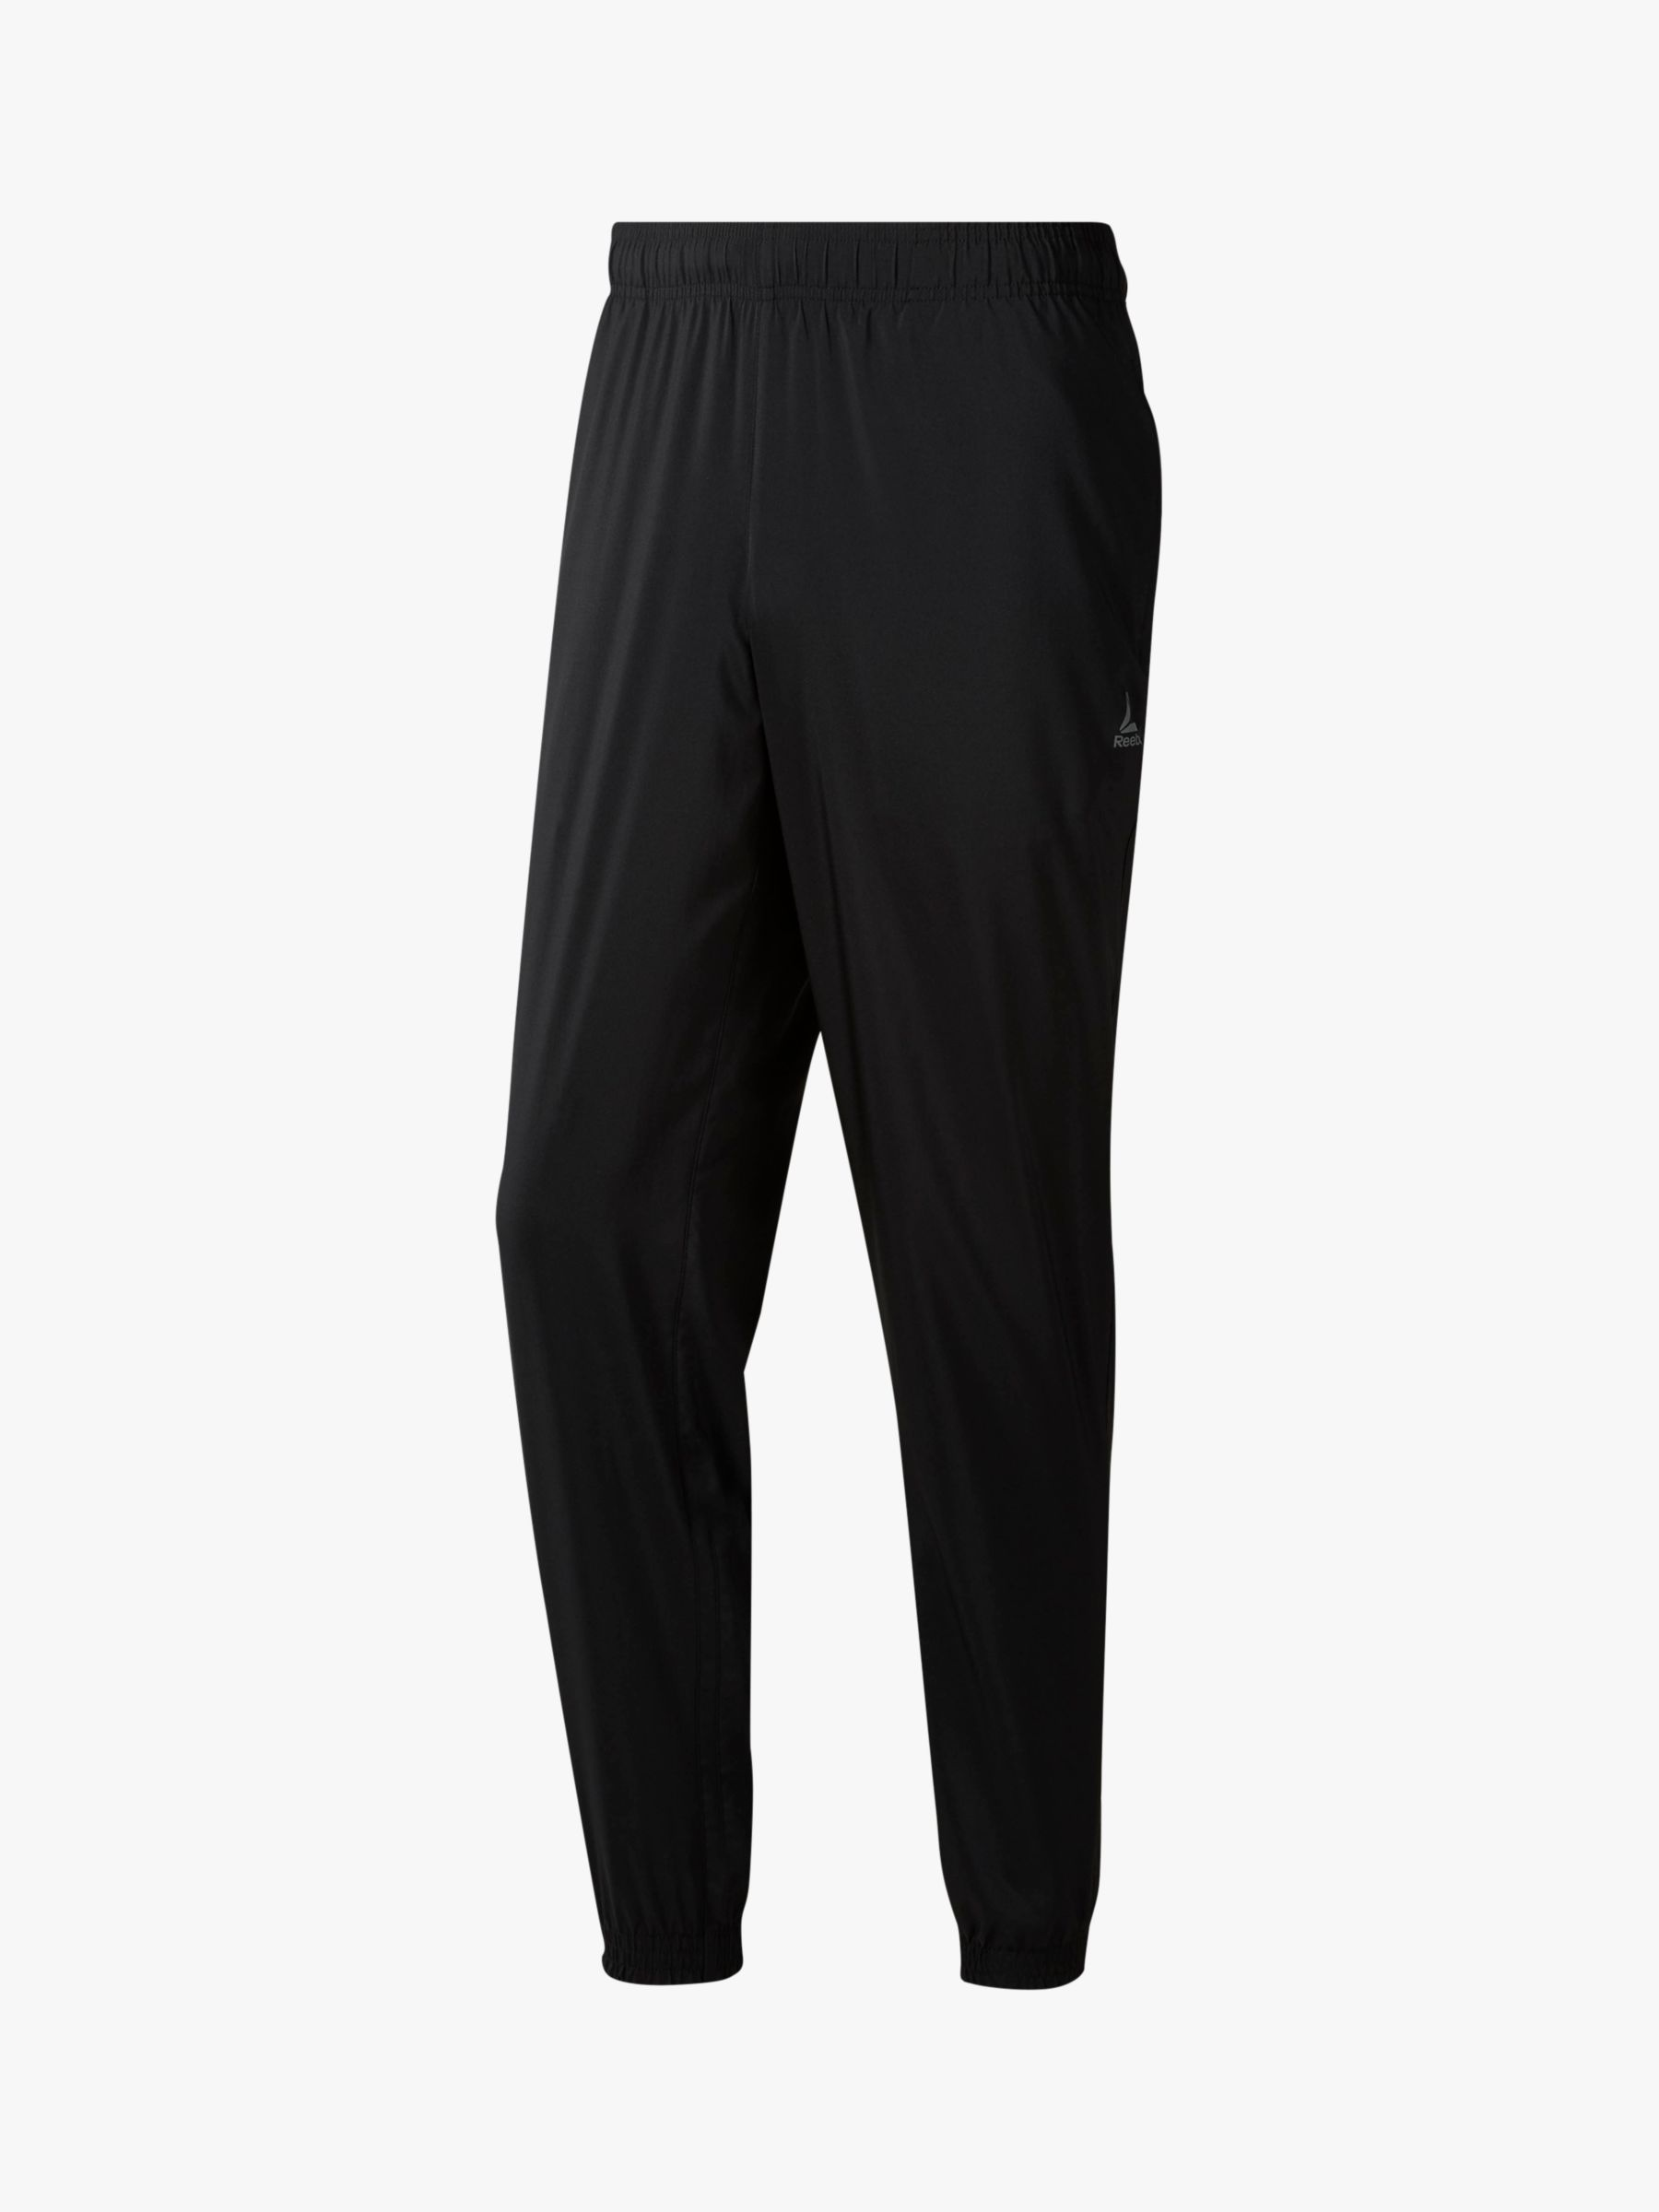 7722e6b54e1b Reebok Training Essentials Cuffed Tracksuit Bottoms at John Lewis   Partners